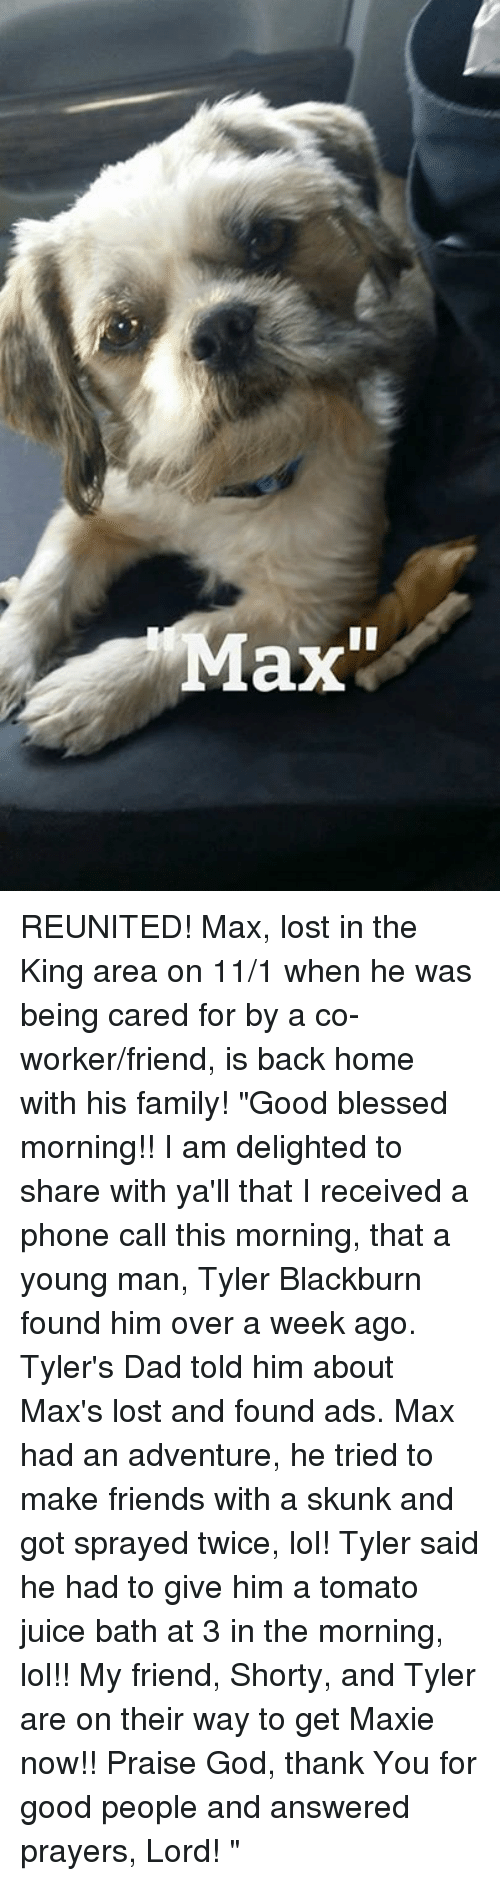 """answered prayers: ax REUNITED!  Max, lost in the King area on 11/1 when he was being cared for by a co-worker/friend, is back home with his family!  """"Good blessed morning!! I am delighted to share with ya'll that I received a phone call this morning, that a young man, Tyler Blackburn found him over a week ago. Tyler's Dad told him about Max's lost and found ads. Max had an adventure, he tried to make friends with a skunk and got sprayed twice, lol! Tyler said he had to give him a tomato juice bath at 3 in the morning, lol!! My friend, Shorty, and Tyler are on their way to get Maxie now!! Praise God, thank You for good people and answered prayers, Lord! ♡♡♡"""""""